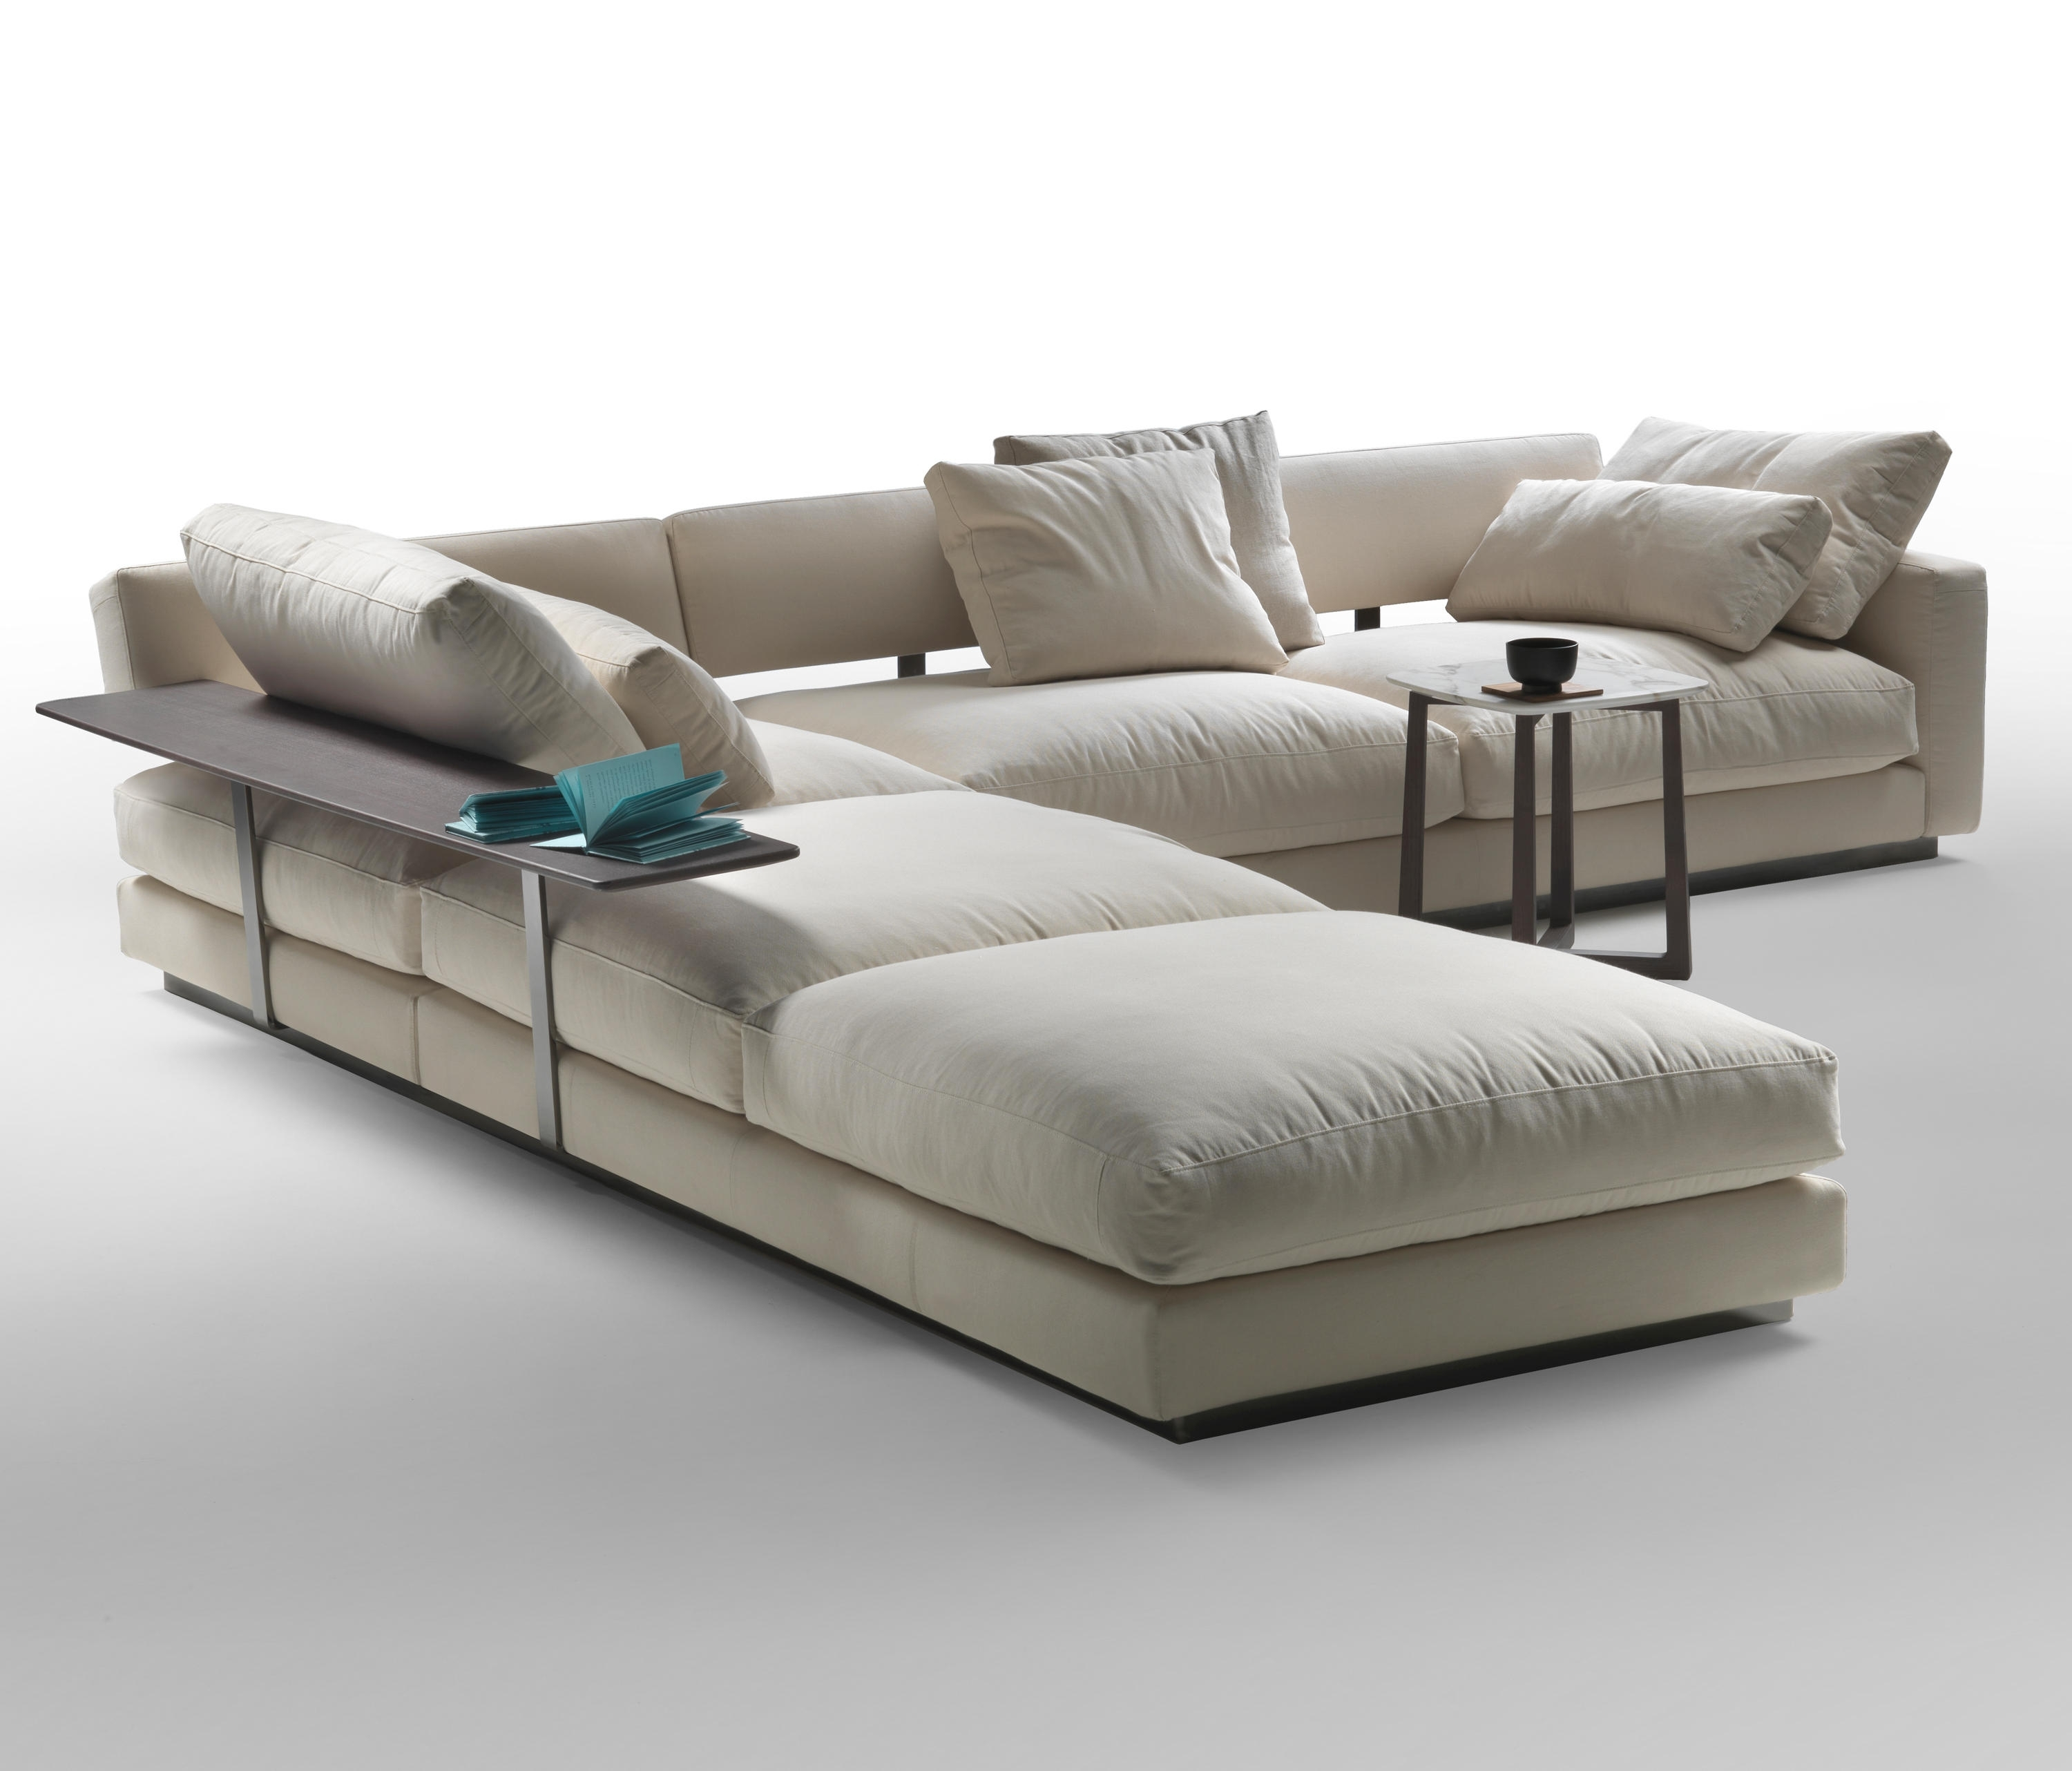 Most Up To Date Pleasure Sectional Sofa – Modular Seating Systems From Flexform Within St Louis Sectional Sofas (View 5 of 20)